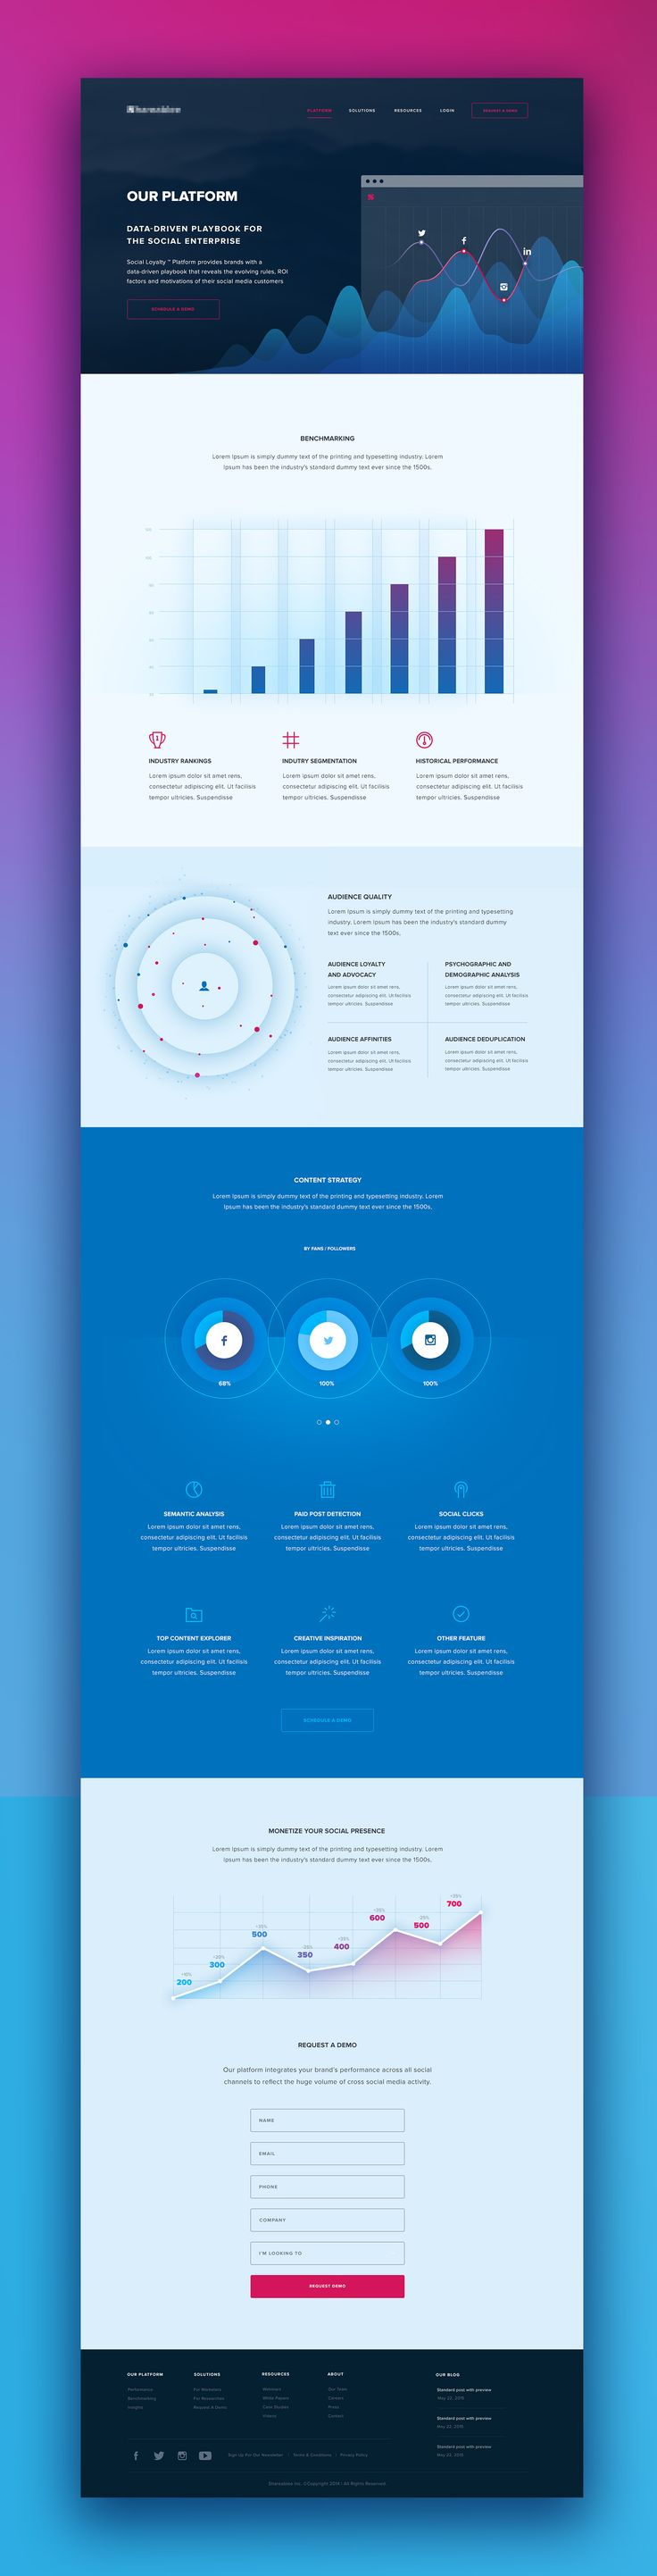 Analytics platform page by Michael Pons for PG